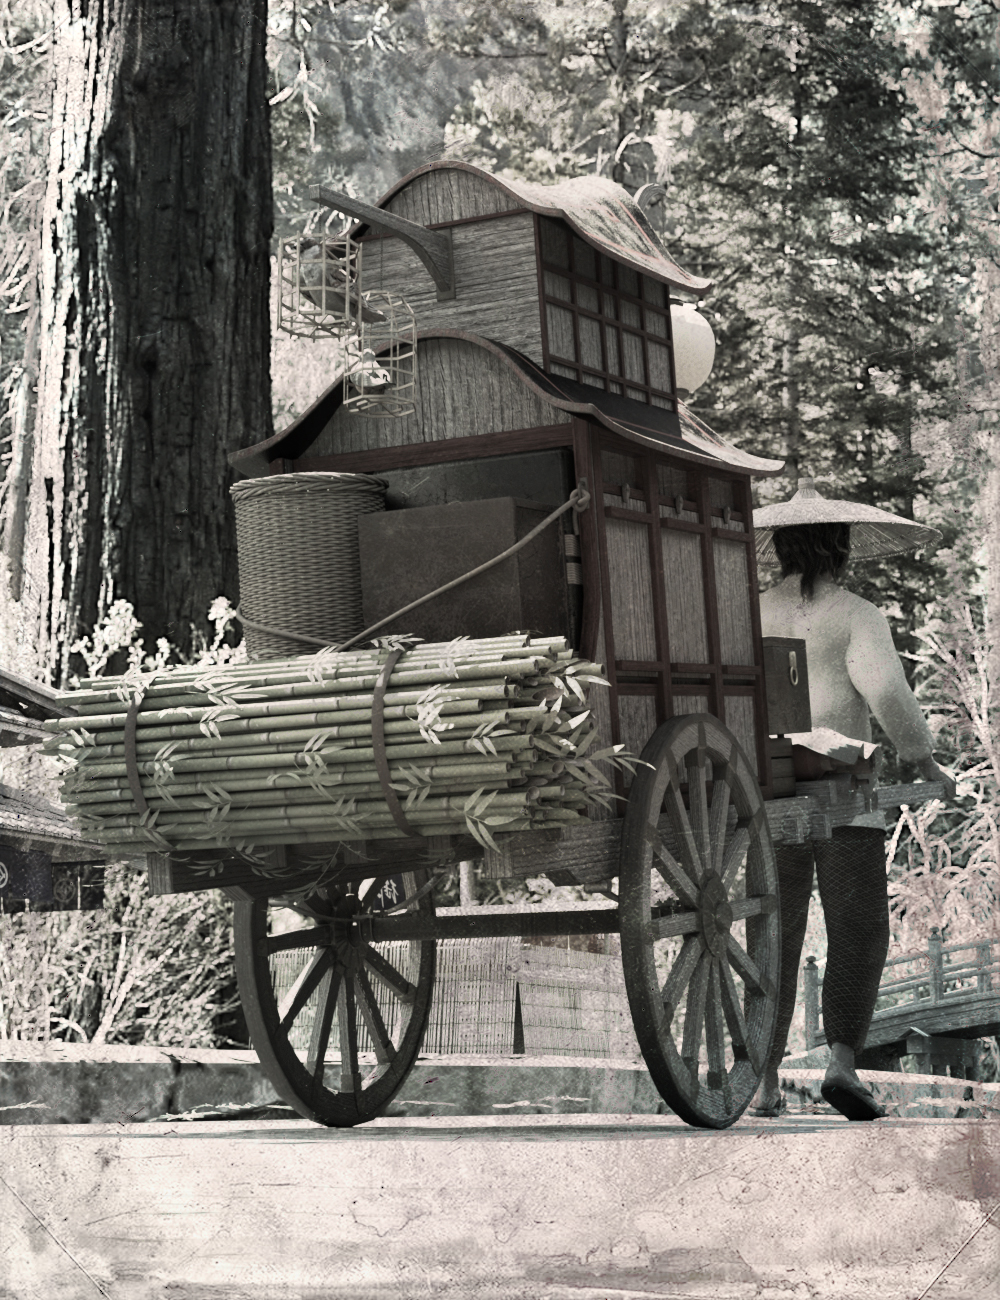 Trade Wagon by: Human, 3D Models by Daz 3D